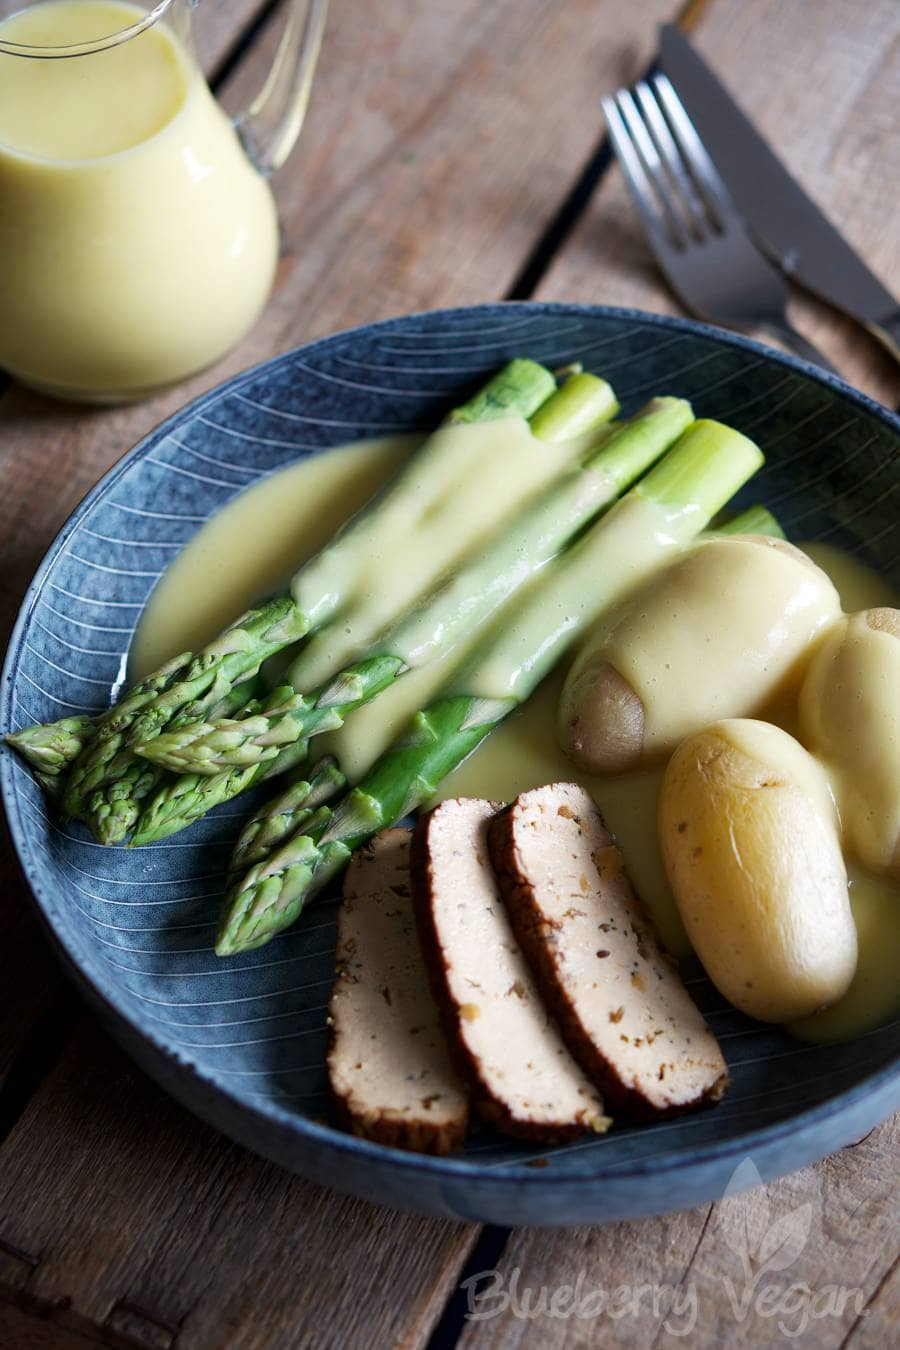 Asparagus with Potatoes, Tofu and The Ultimate Vegan Sauce Hollandaise